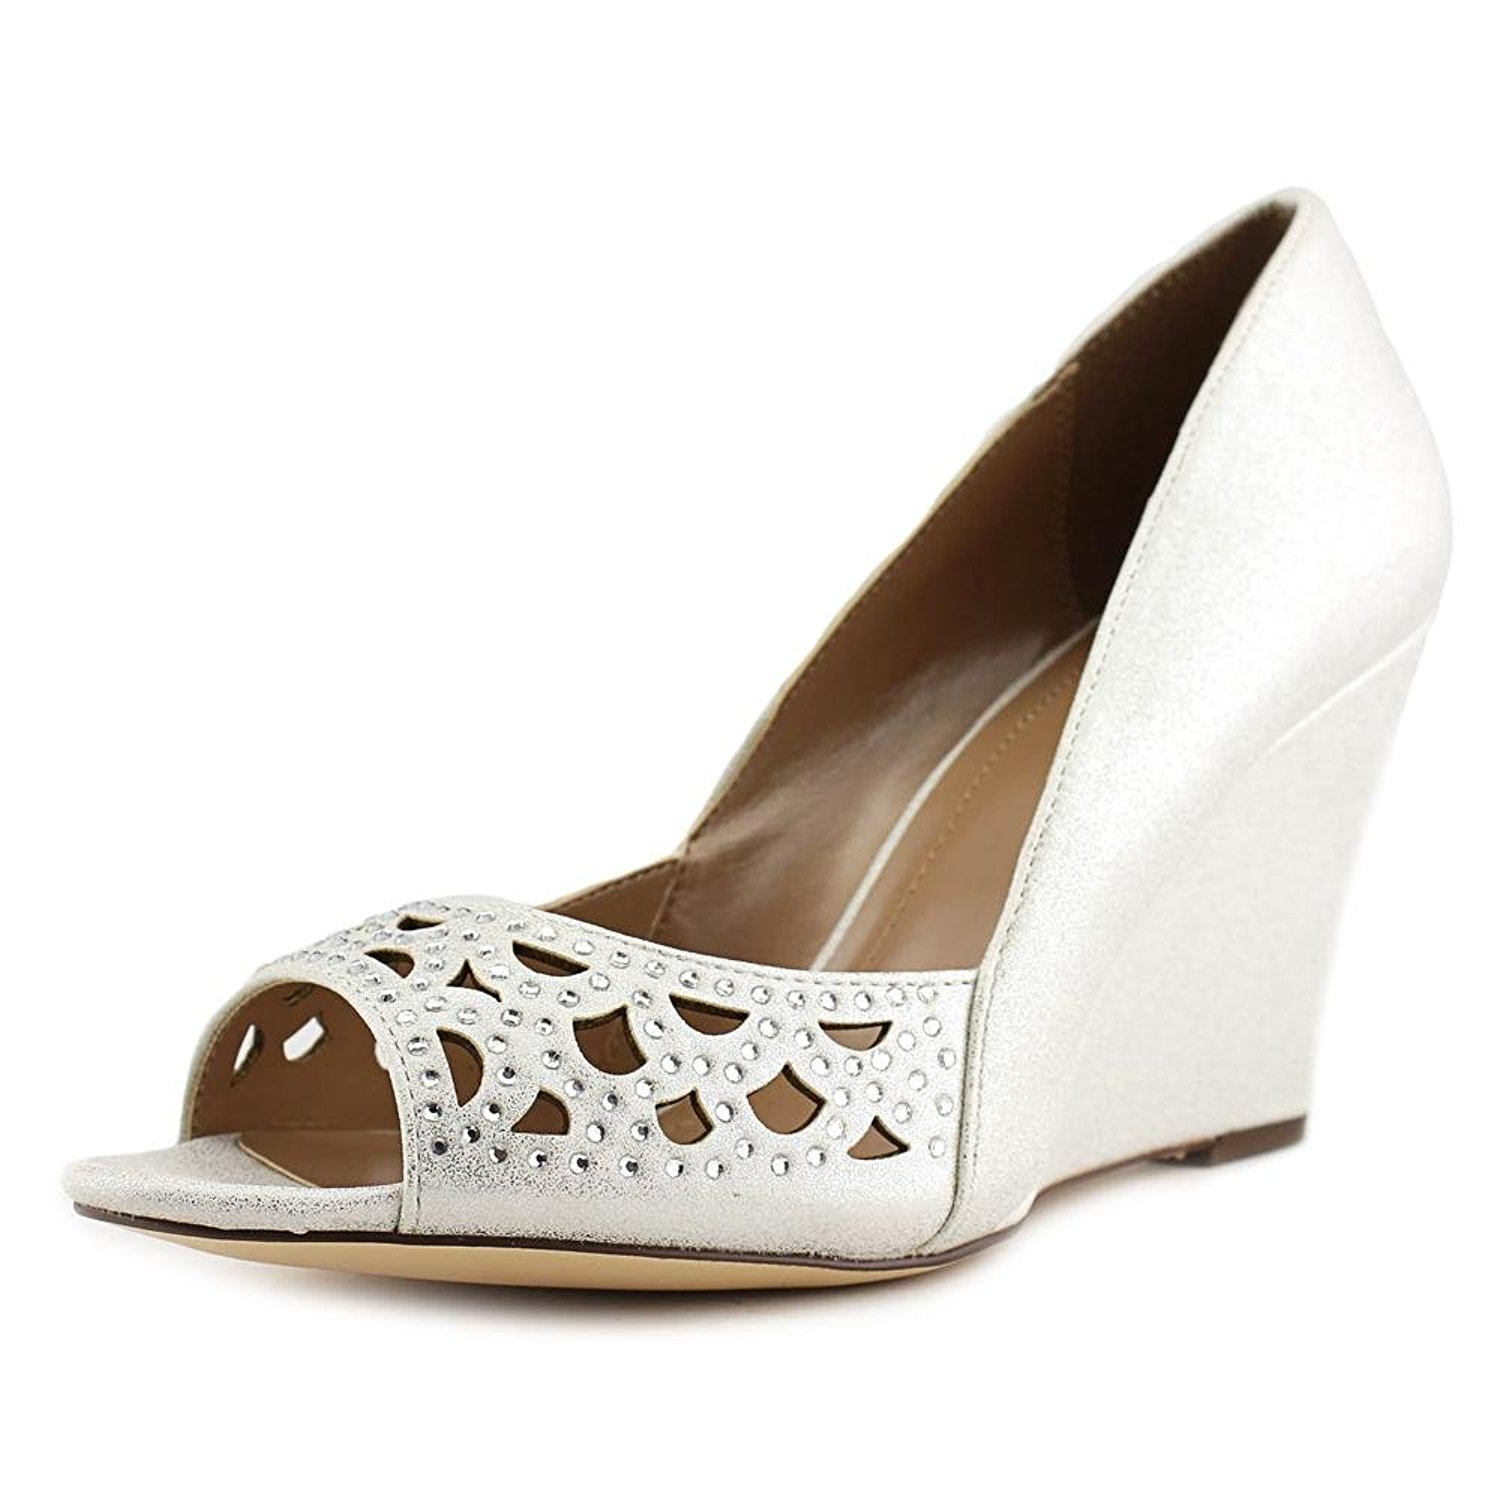 Style Co. Womens Cathiee Open Toe Wedge Pumps White Size 8.0